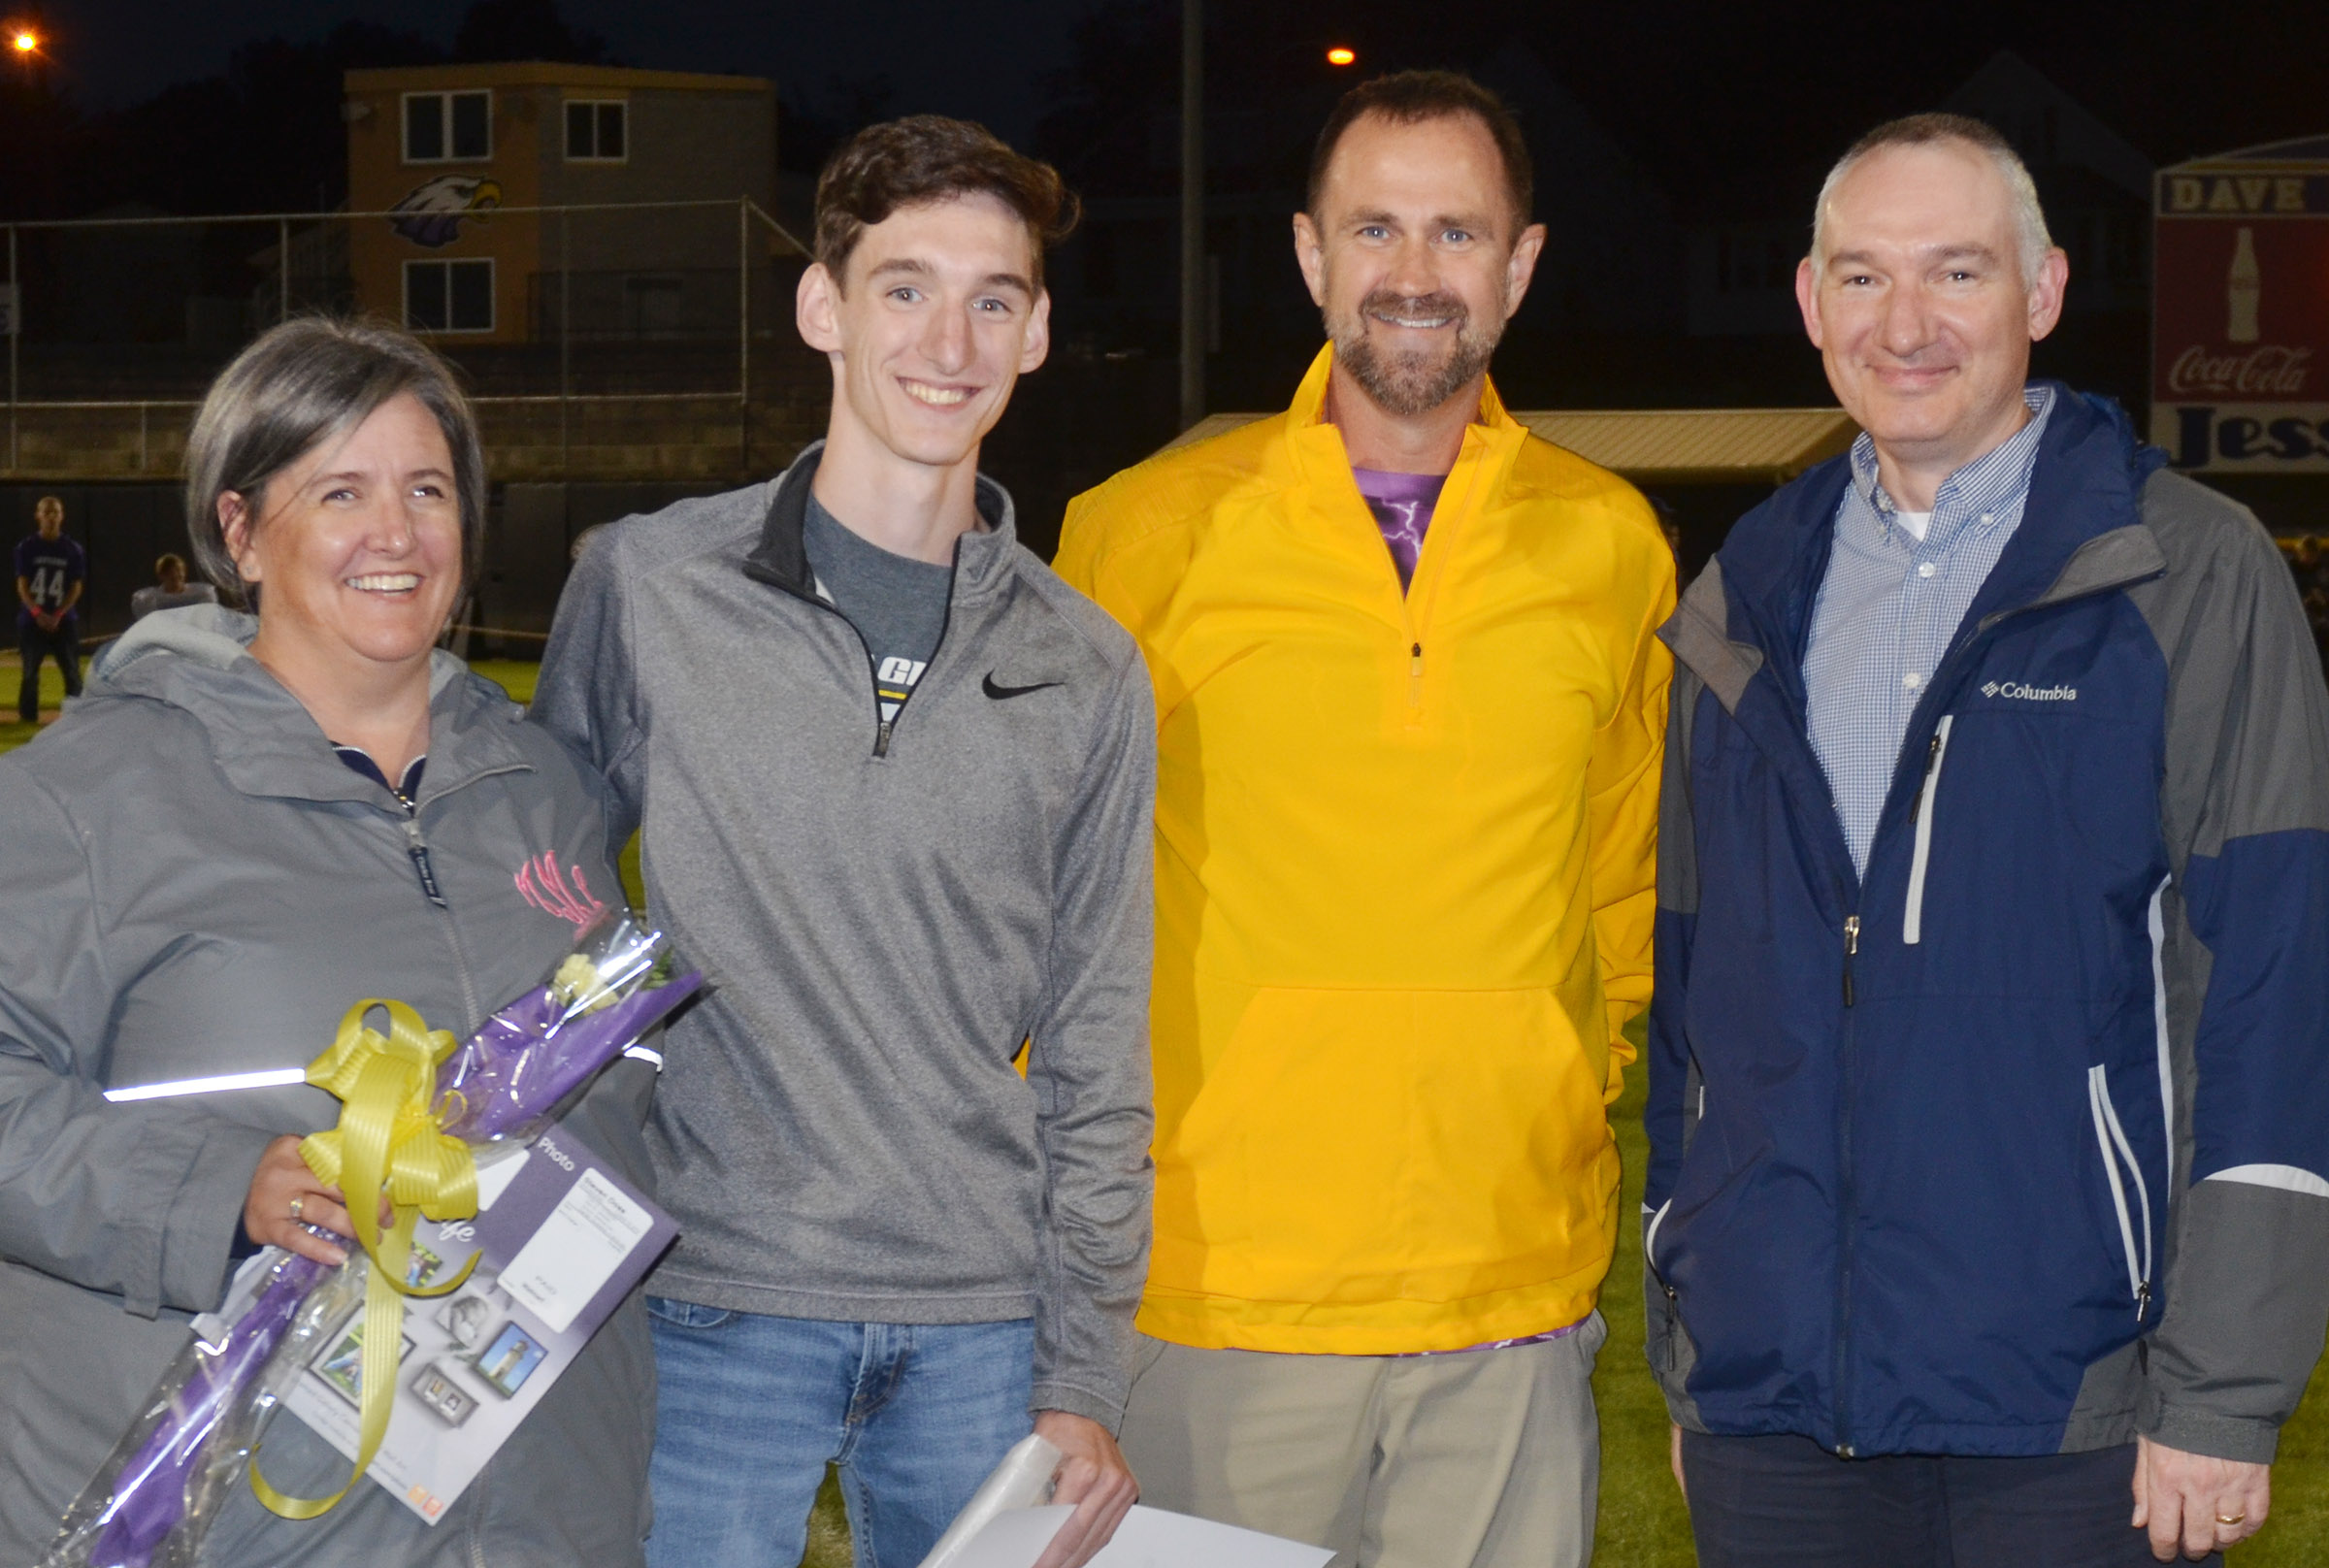 CHS senior cross country runner Ian McAninch was honored on Friday, Oct. 19. He is pictured with his mother Lori, at left, father Troy, at right, and coach Steve Doss.